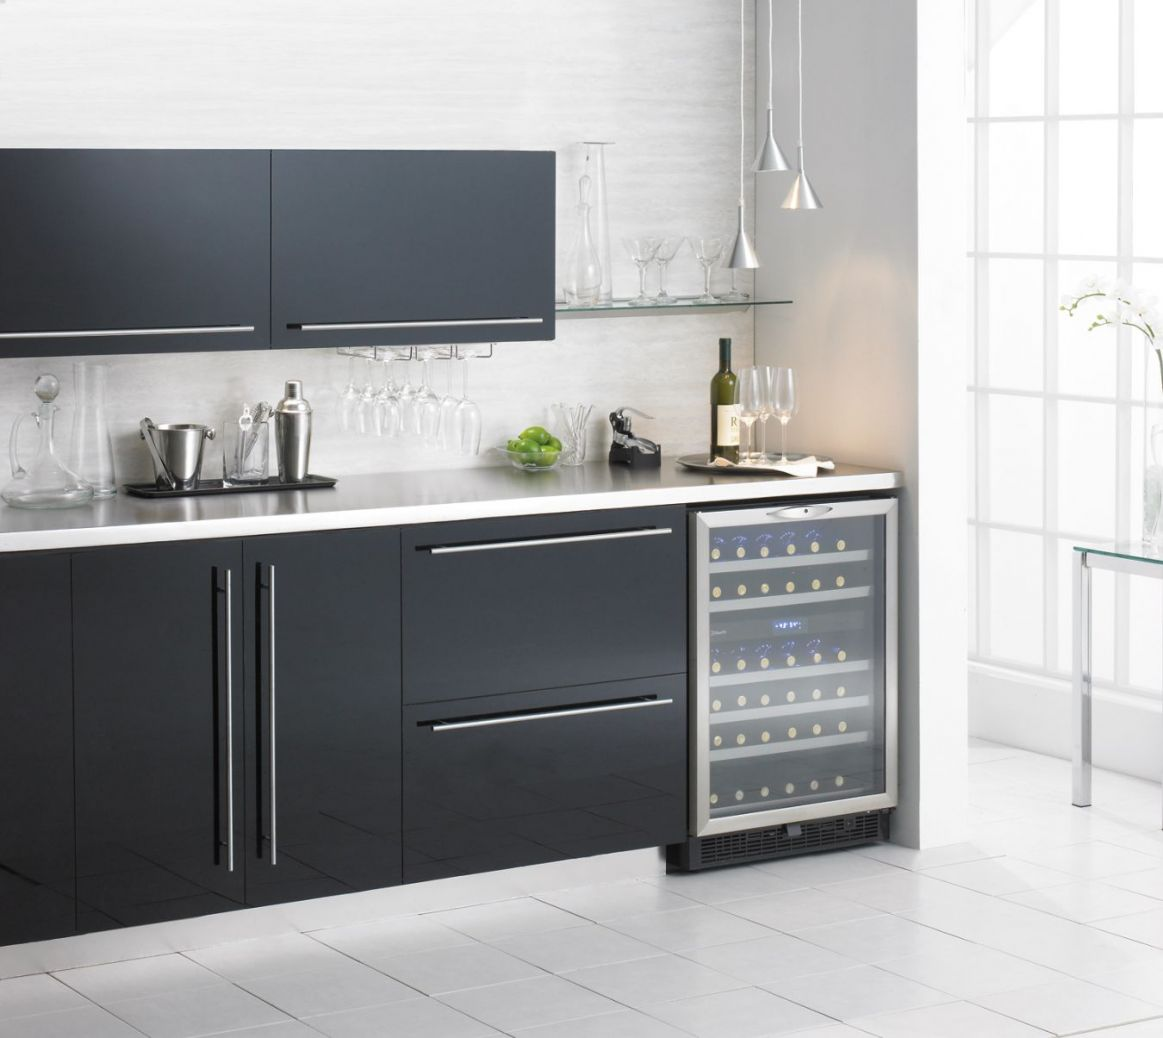 Wine Cooler Refrigerators Keep The Taste Fresh From The